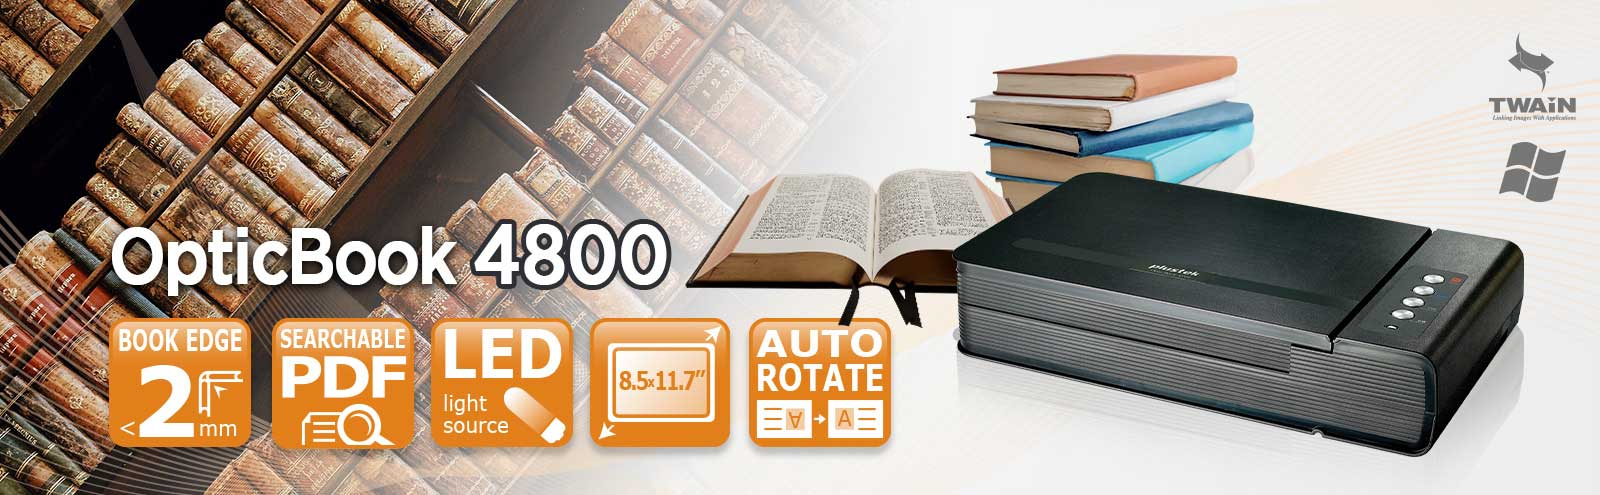 The Plustek OpticBook 4800 with intuitive eBookScan helps you scan your heavy books and bound materials into electronic files.